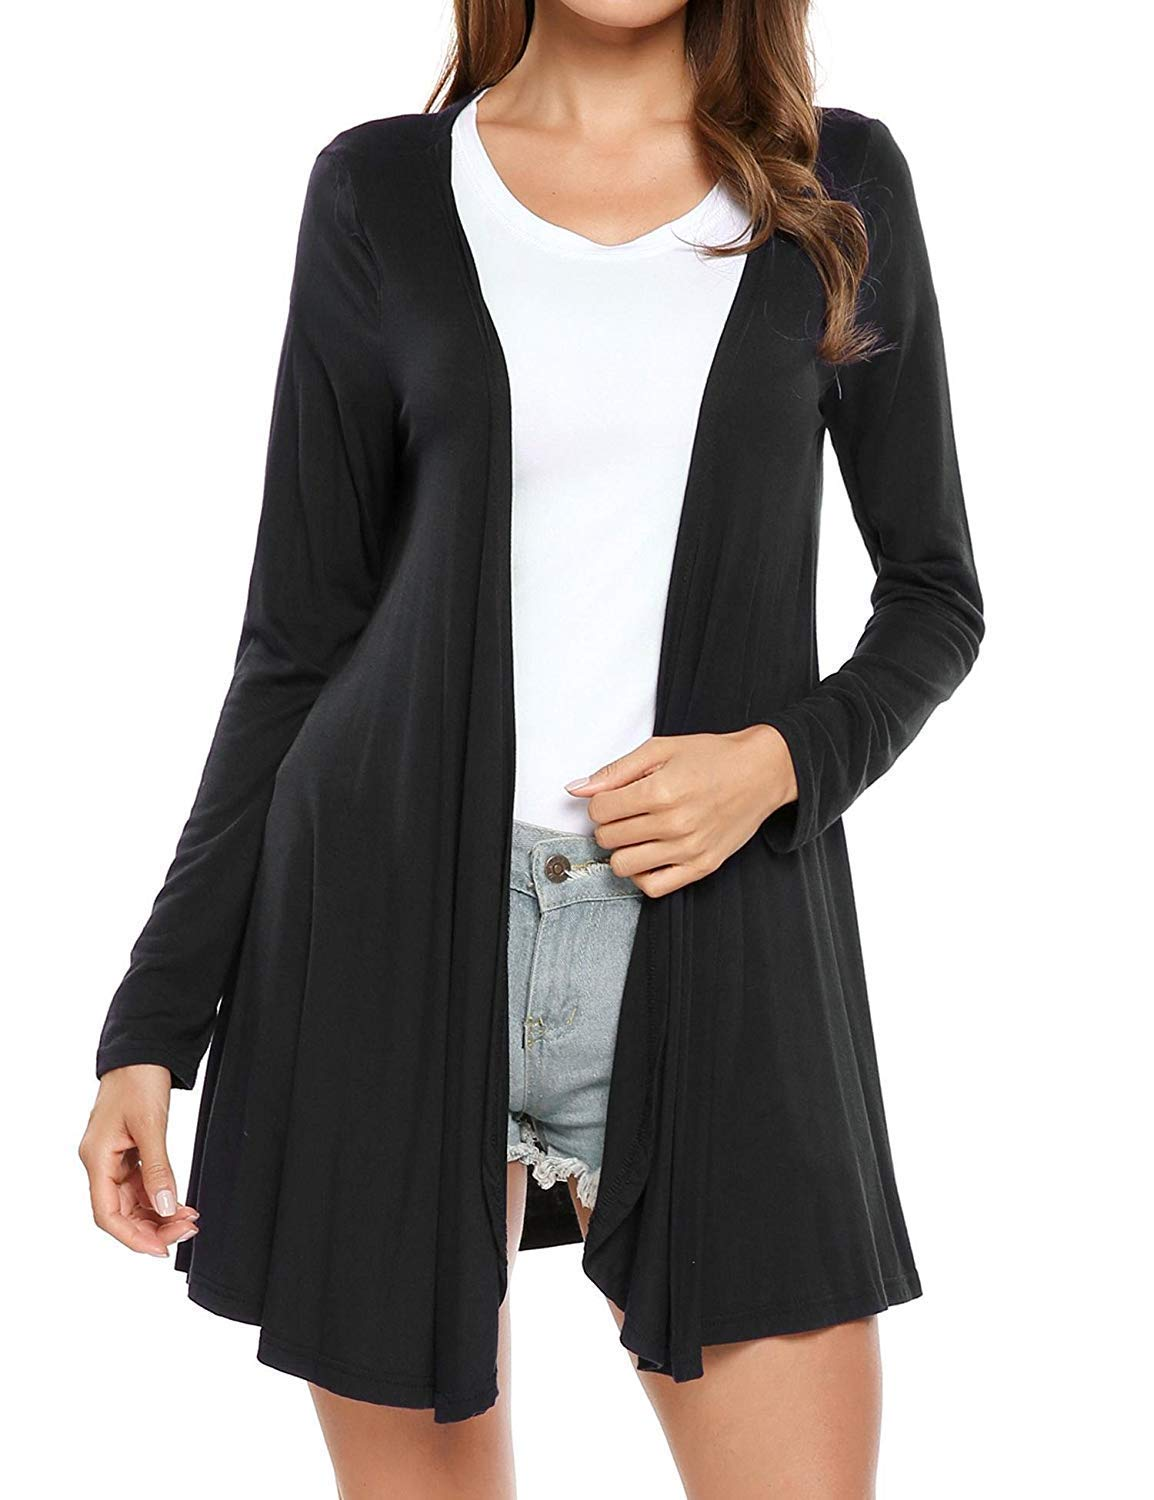 SoTeer Women's Open Front Cardigan Long Sleeve Draped Ruffles Cardigan Knit Sweaters S-XXL